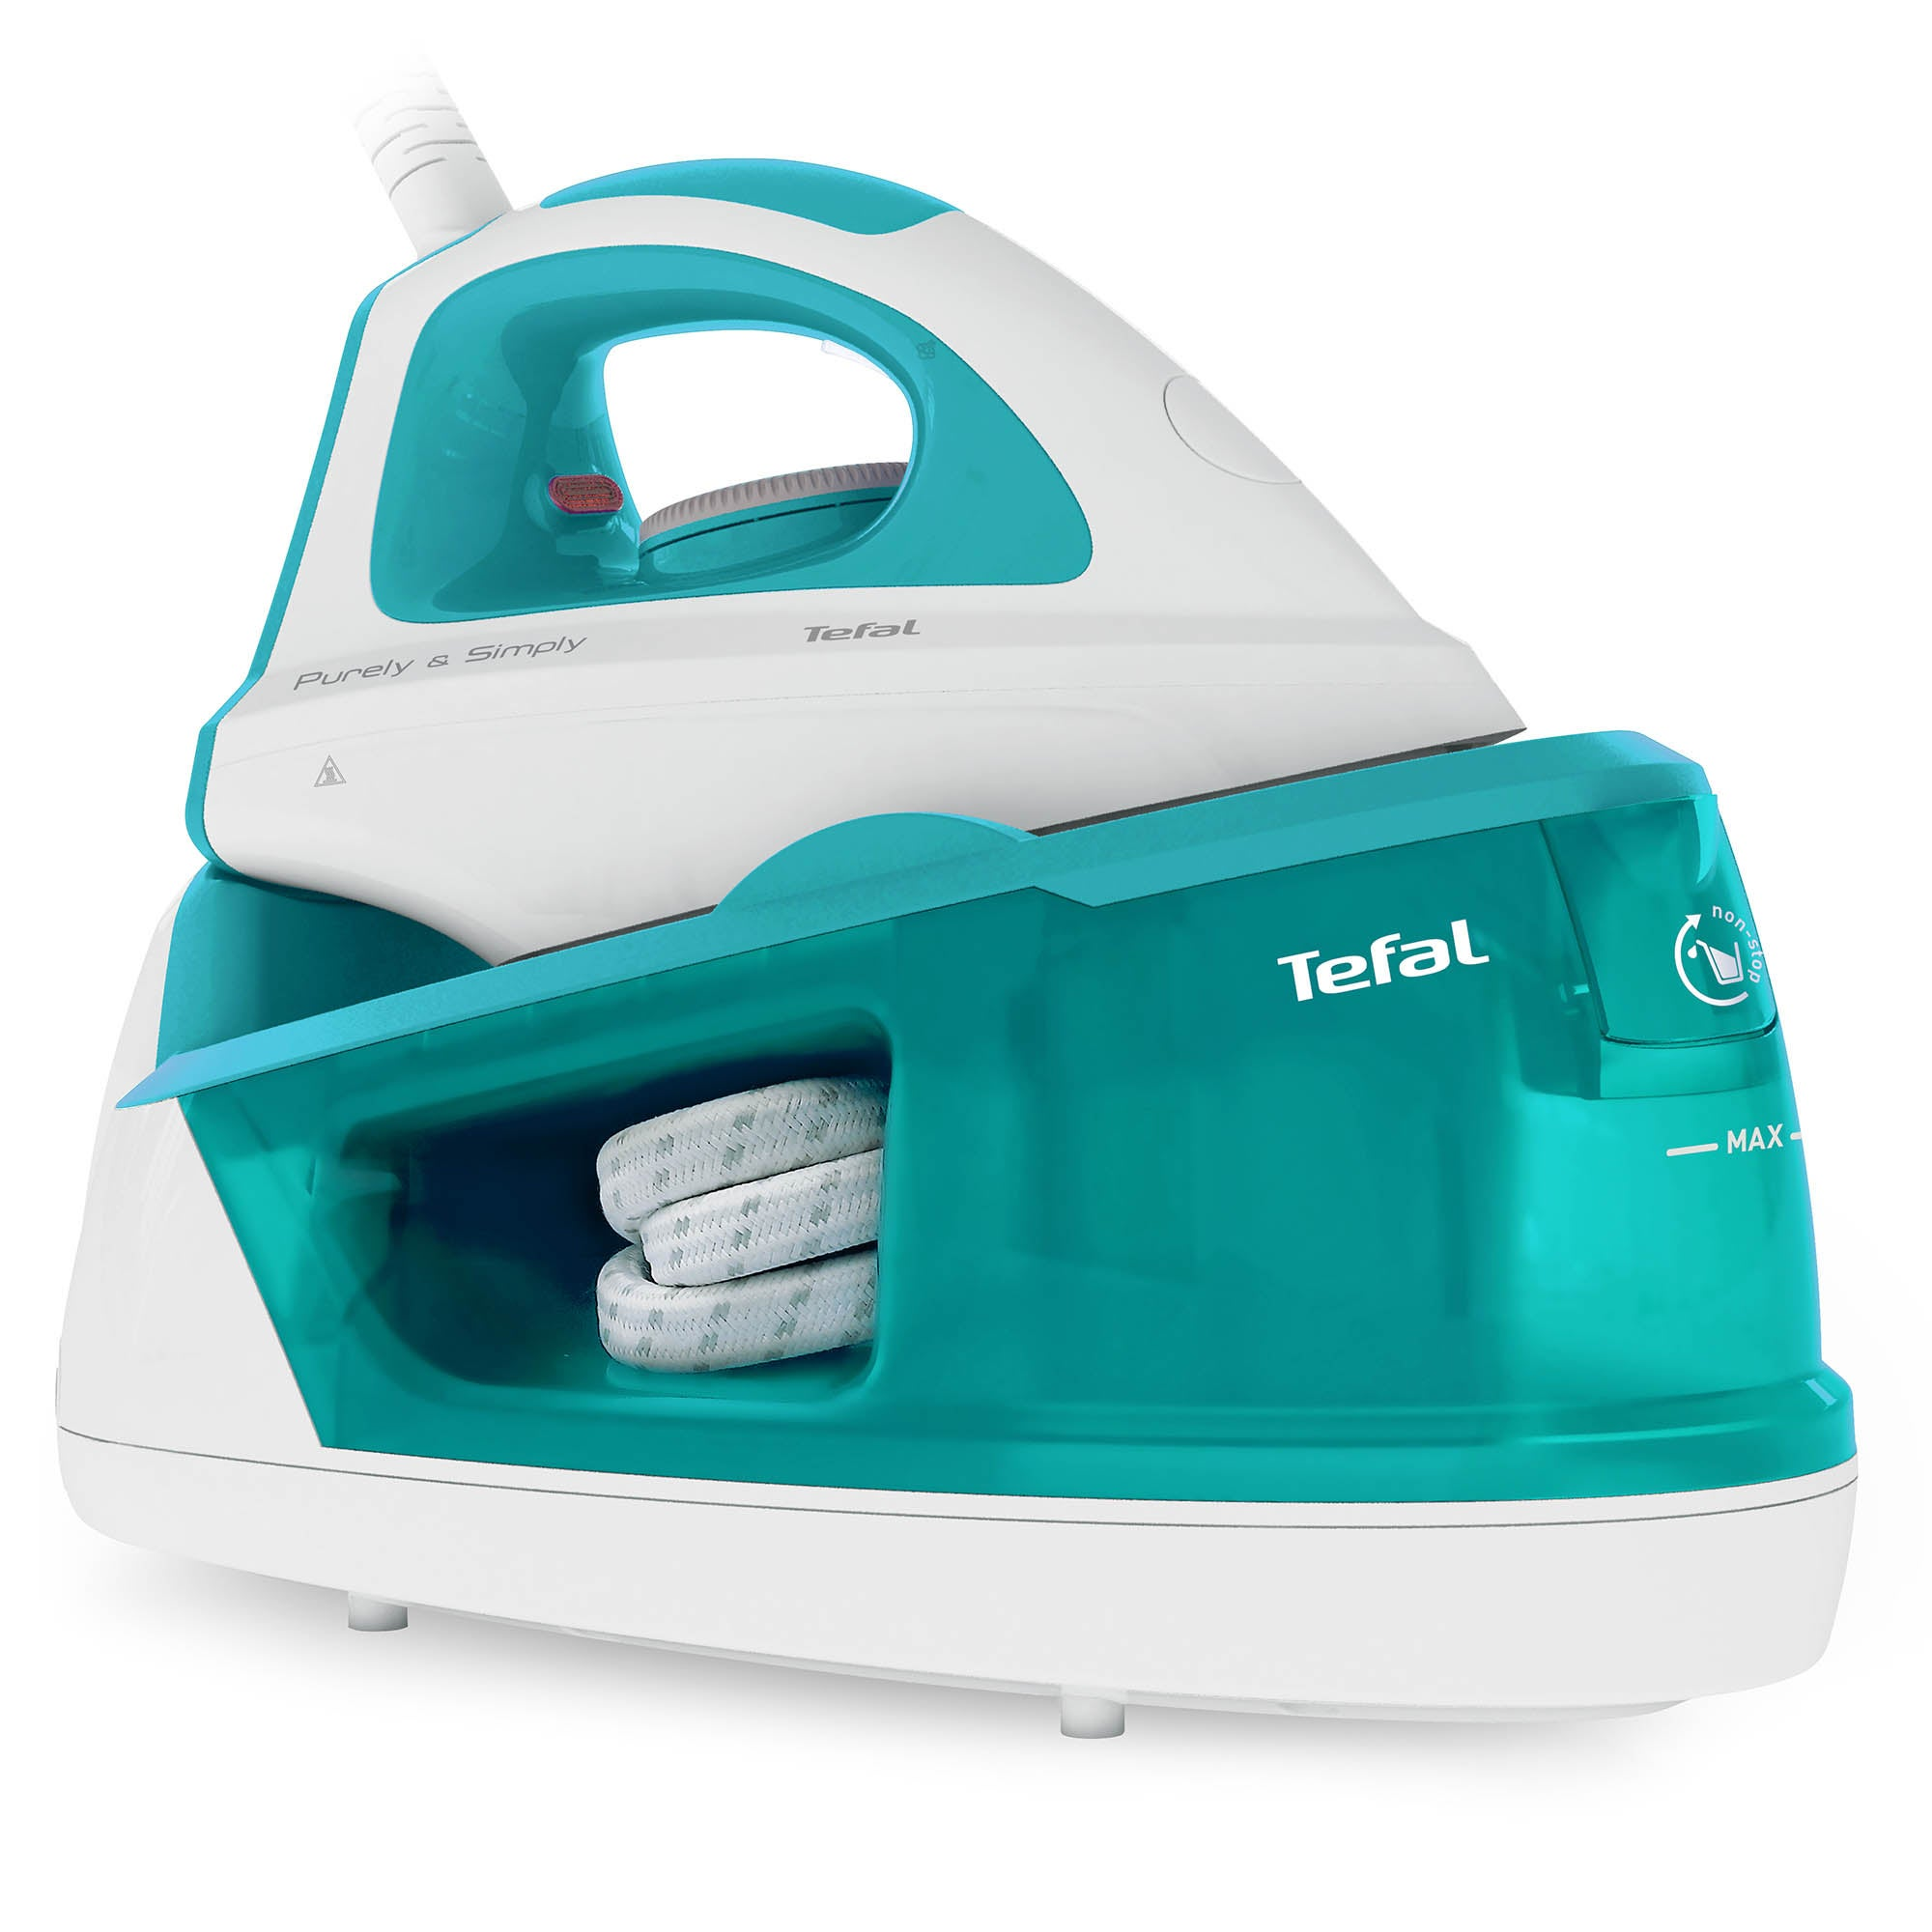 Tefal SV5011 2200w Steam Generator Iron TurquoiseWhite